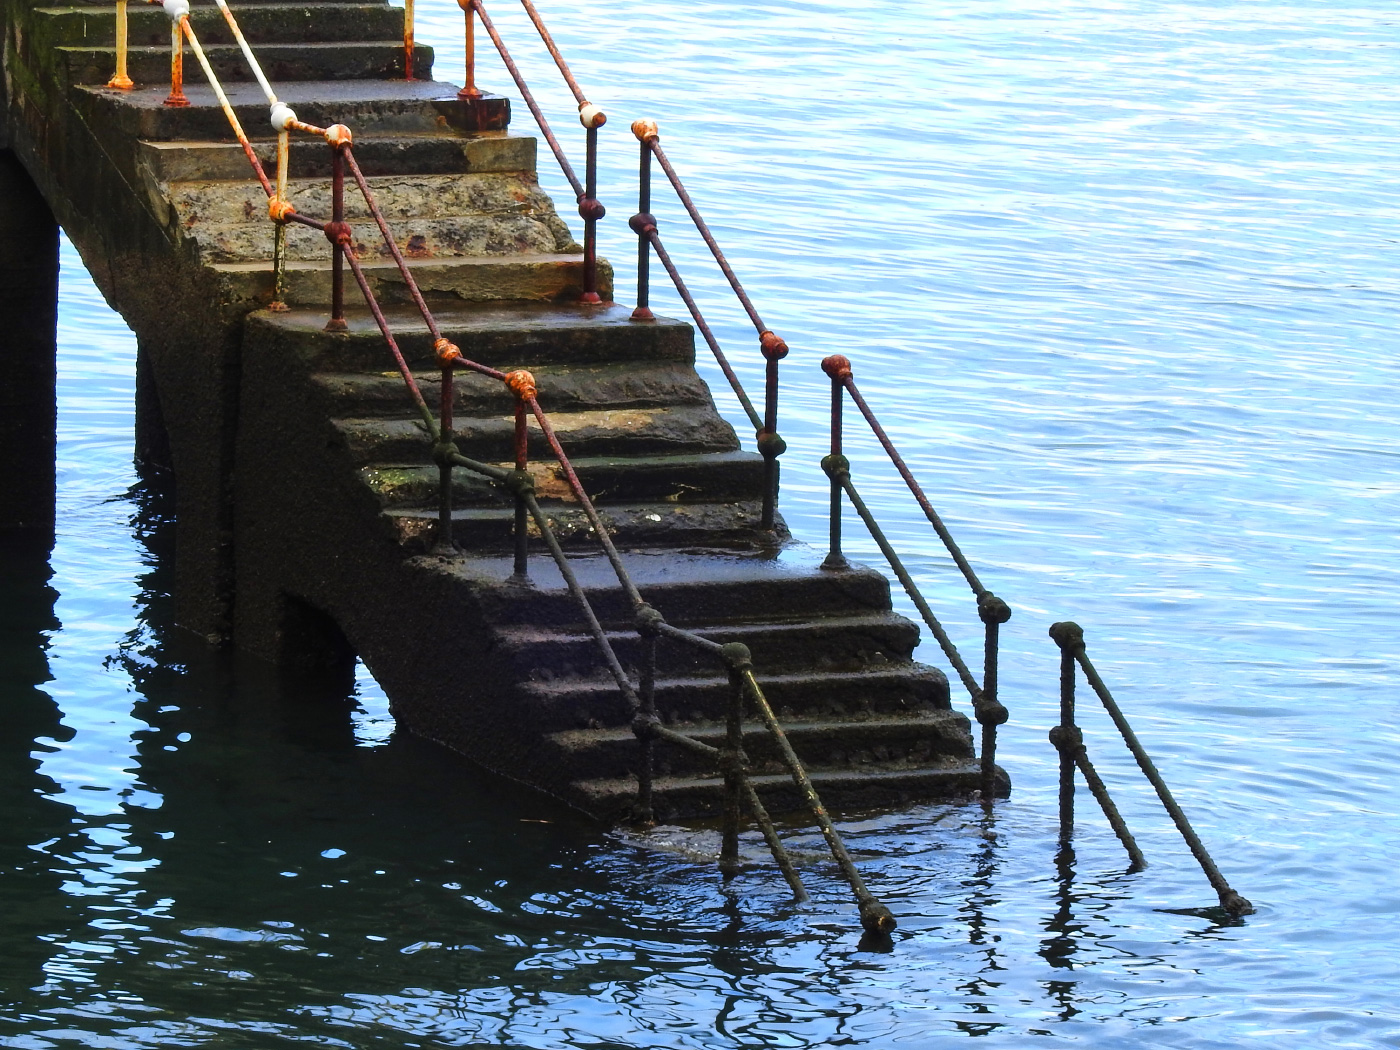 Photo of a set of worn and weathered stairs descending into water